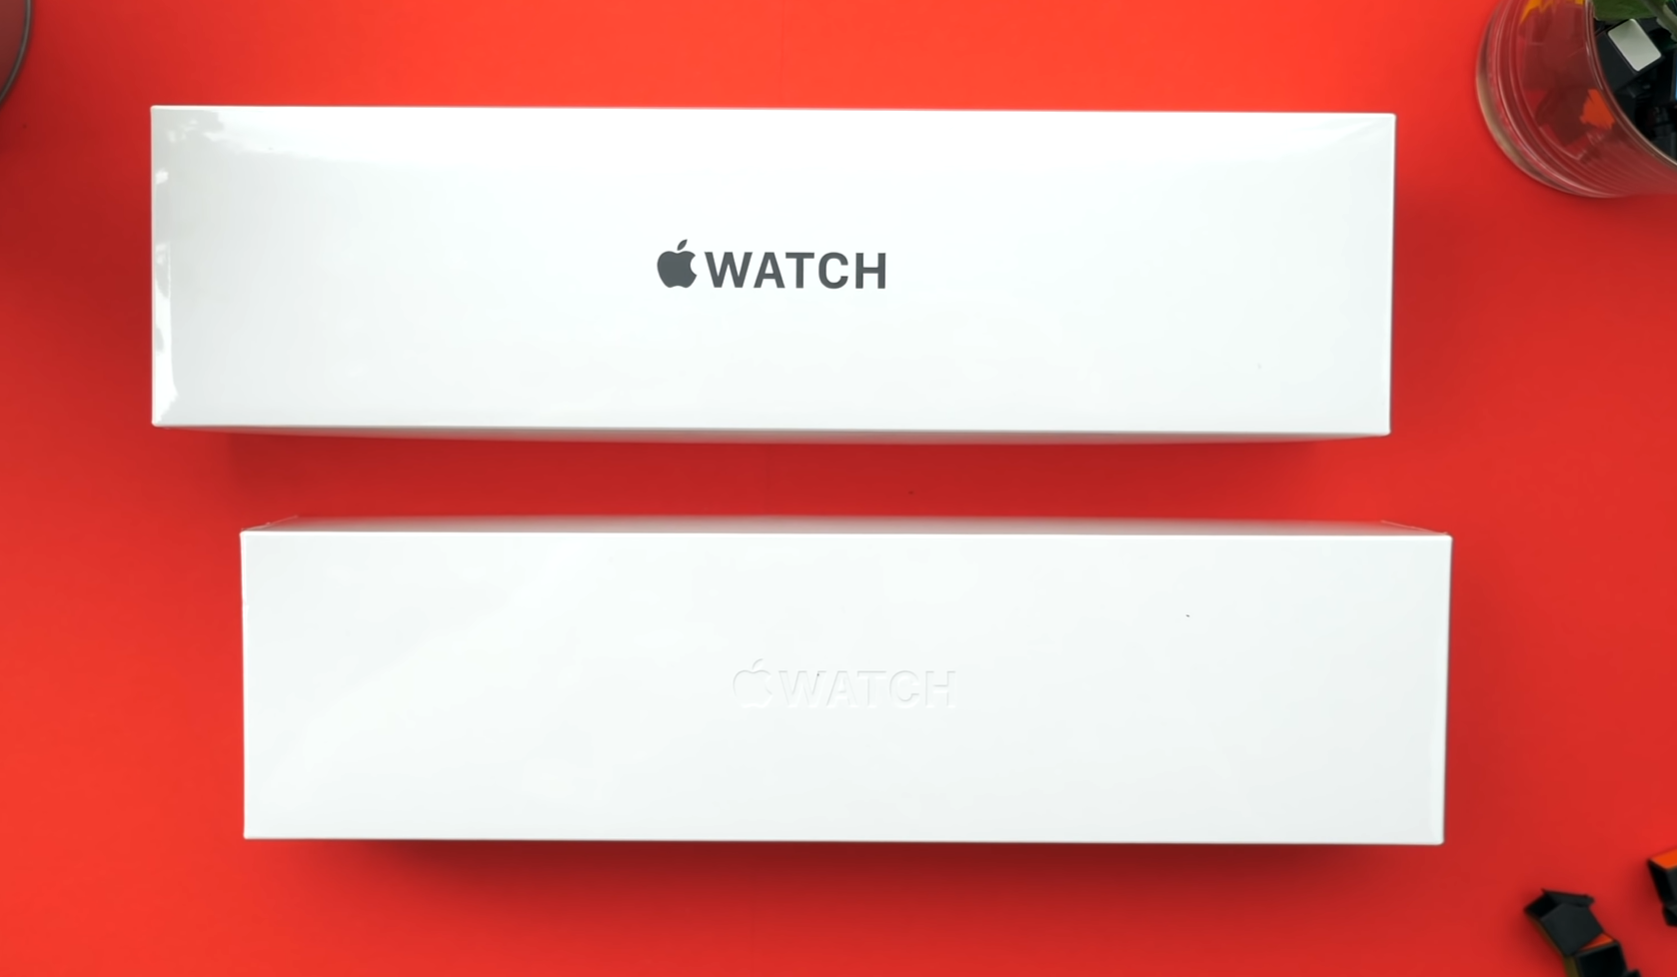 Design comparison between the Apple Watch Edition box (Top) and Stainless Steel Model box (Bottom)